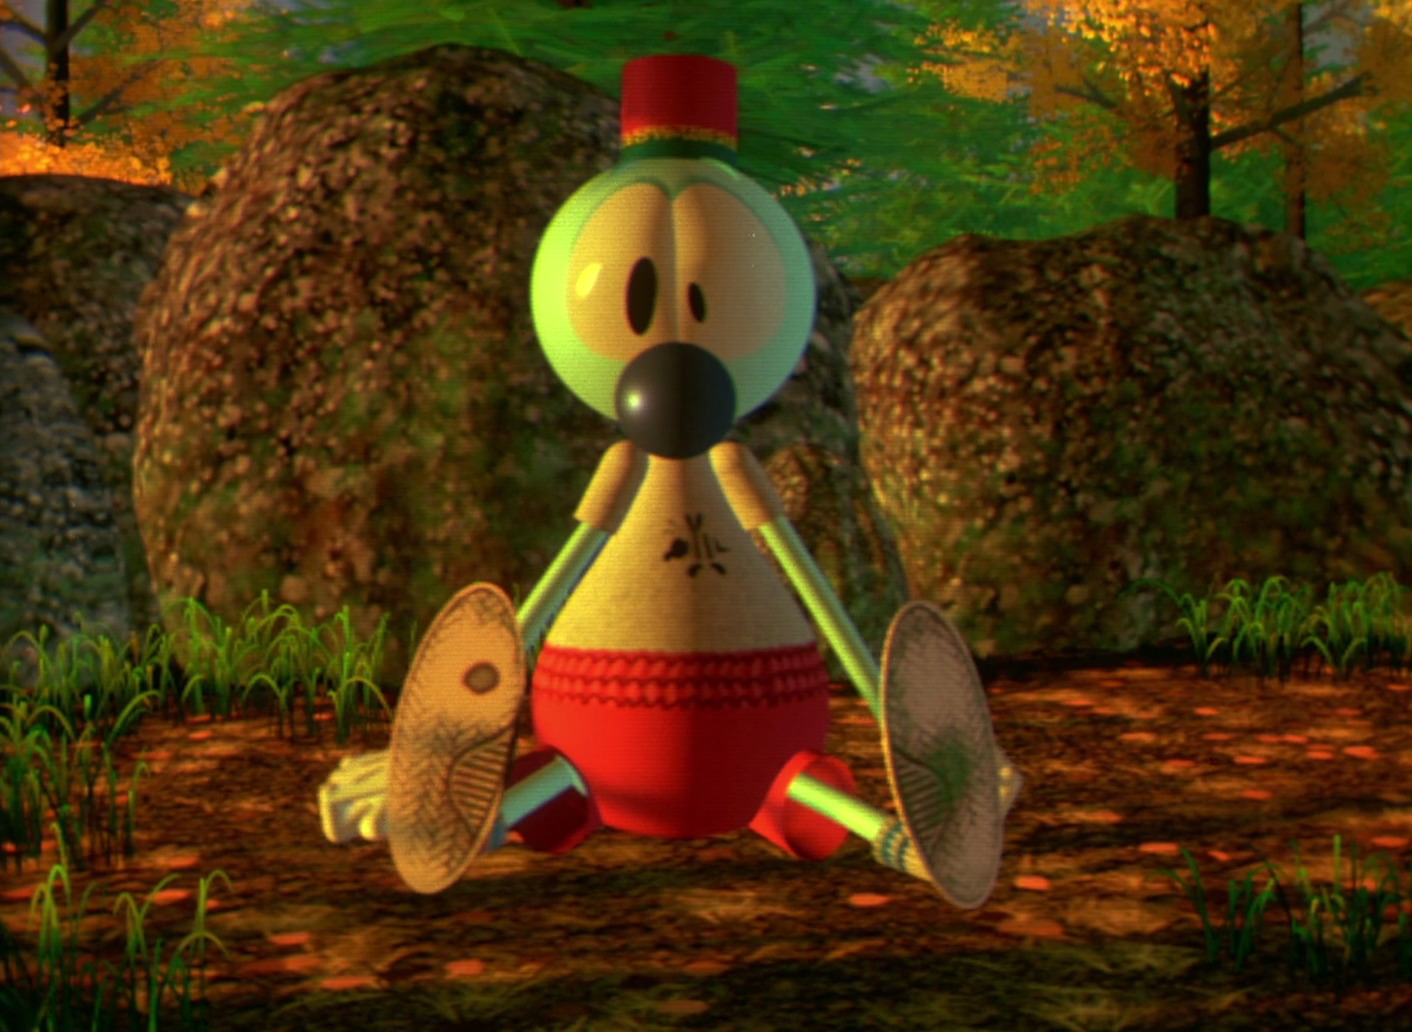 andre-personnage-aventure-andre-wally-b-02